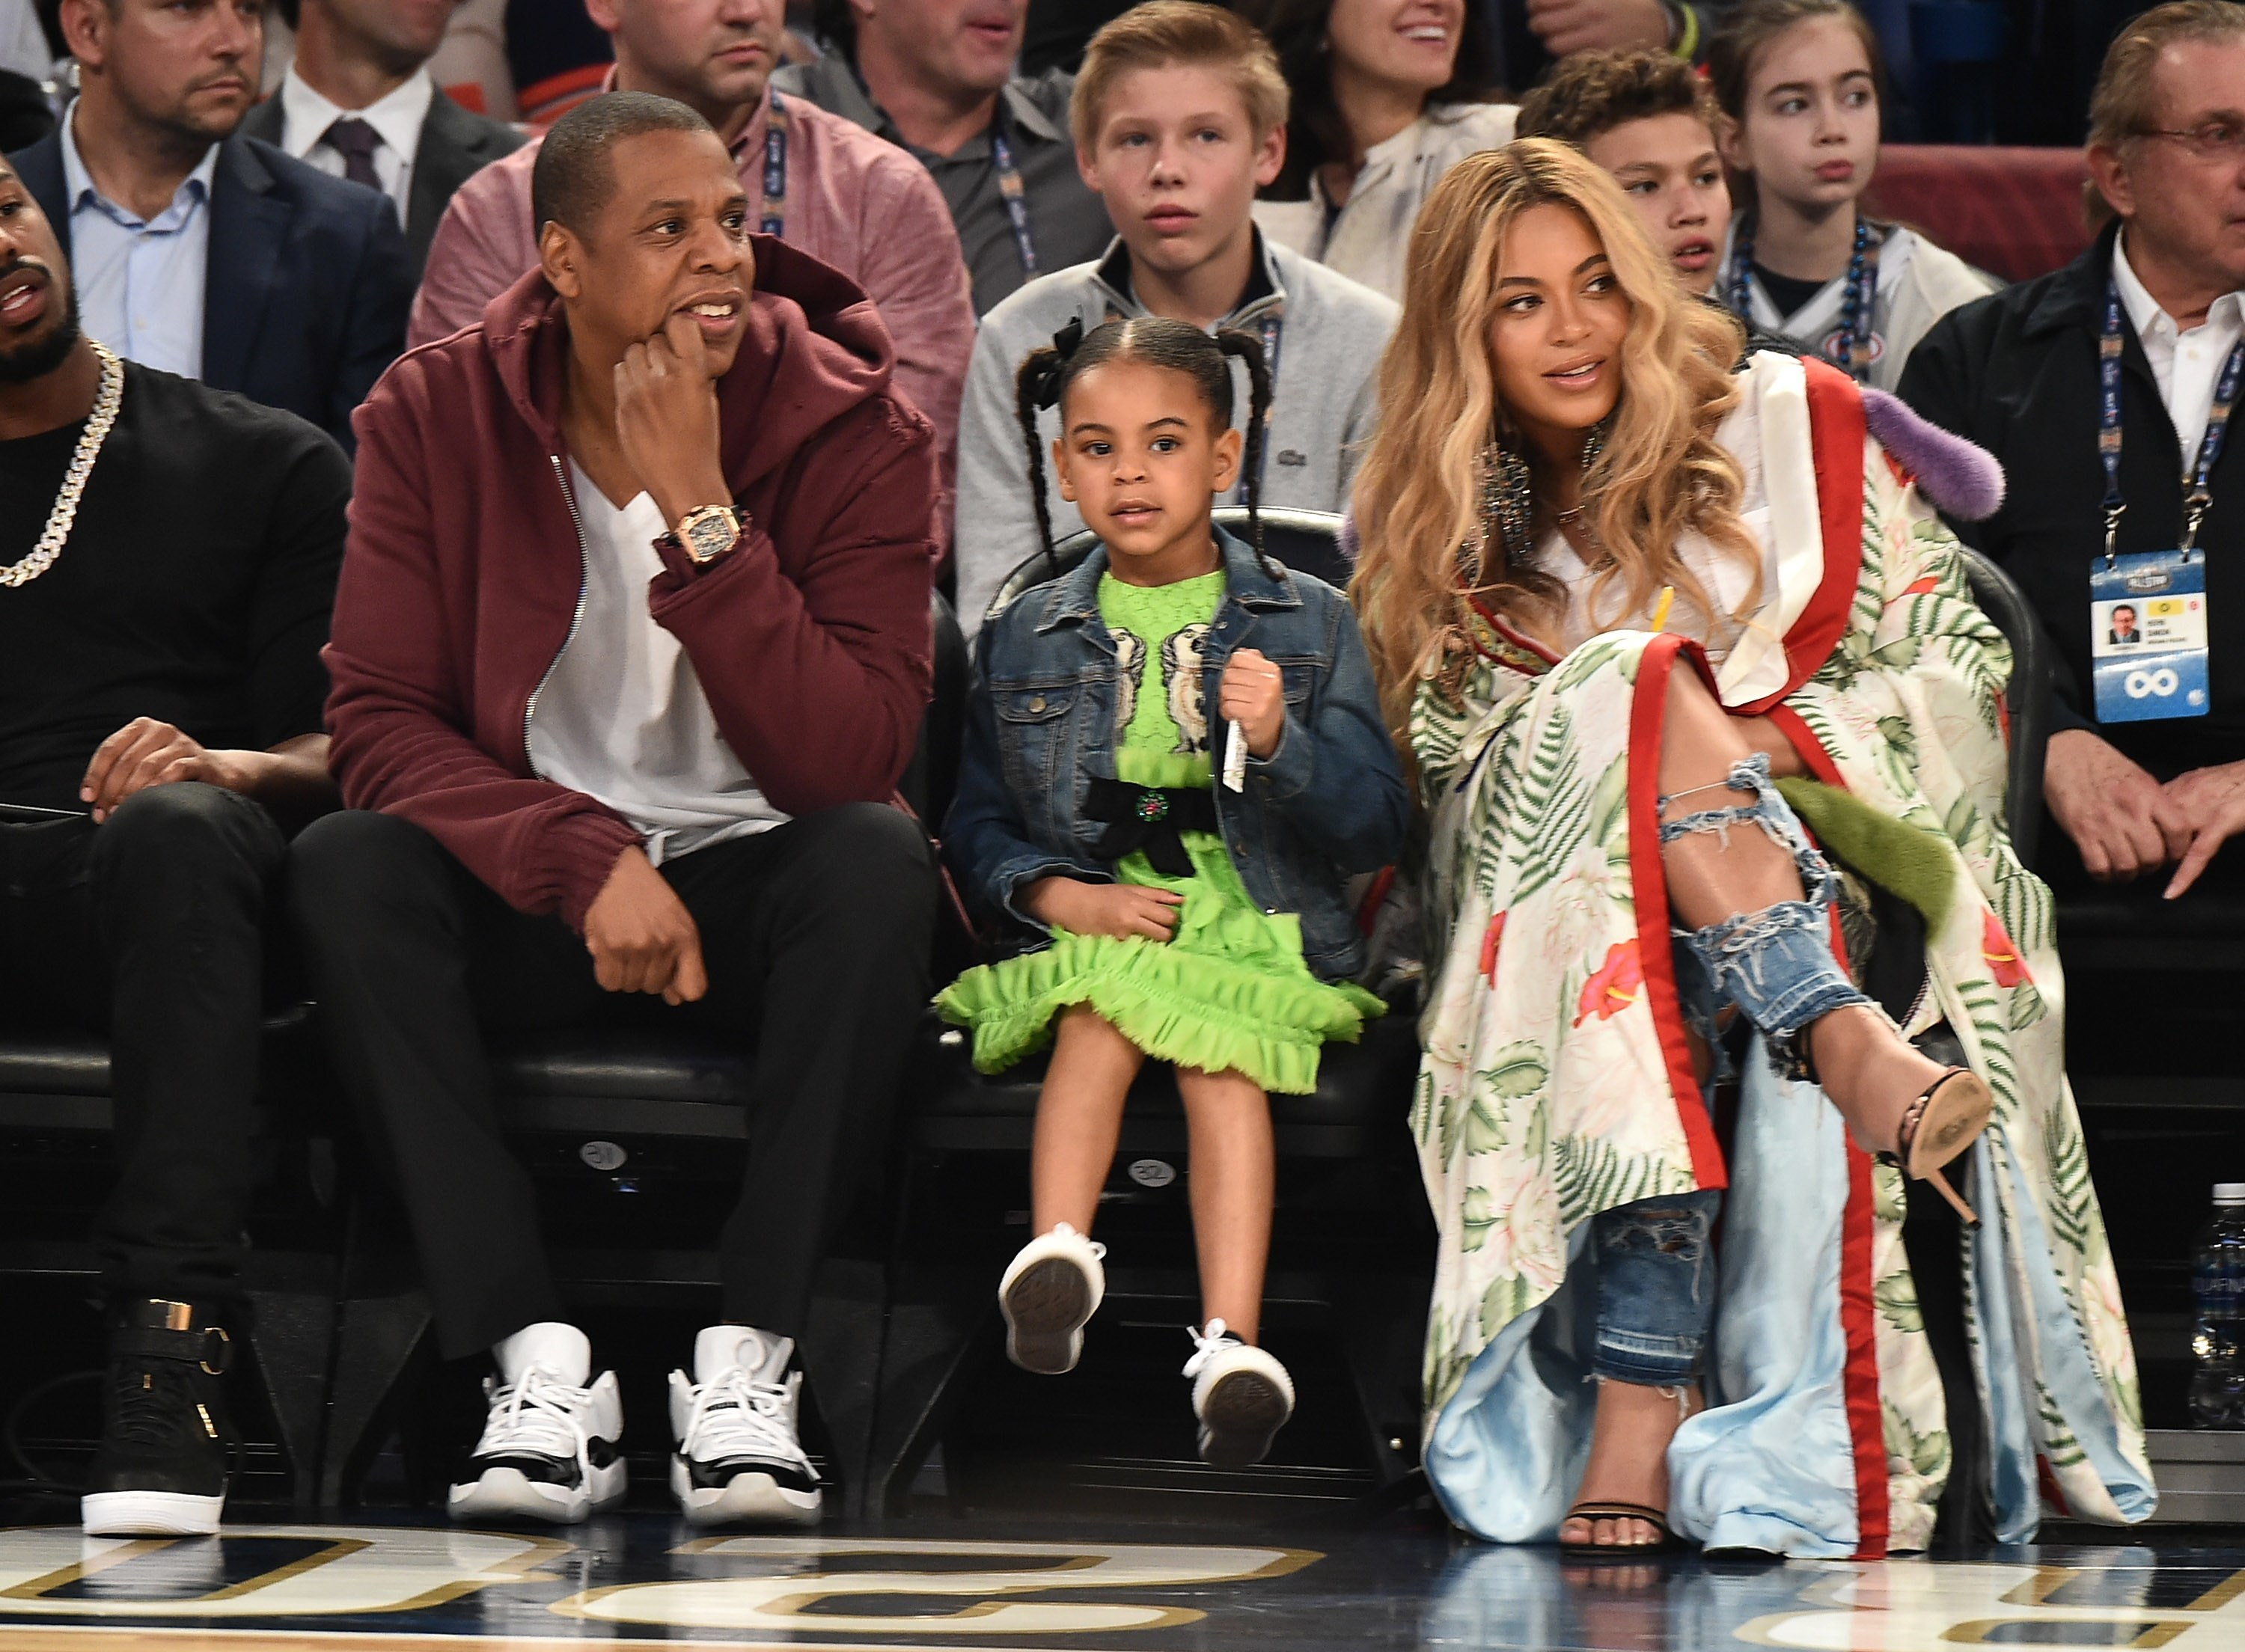 Blue Ivy Carter wore an $1,800 dress to the All Star Game